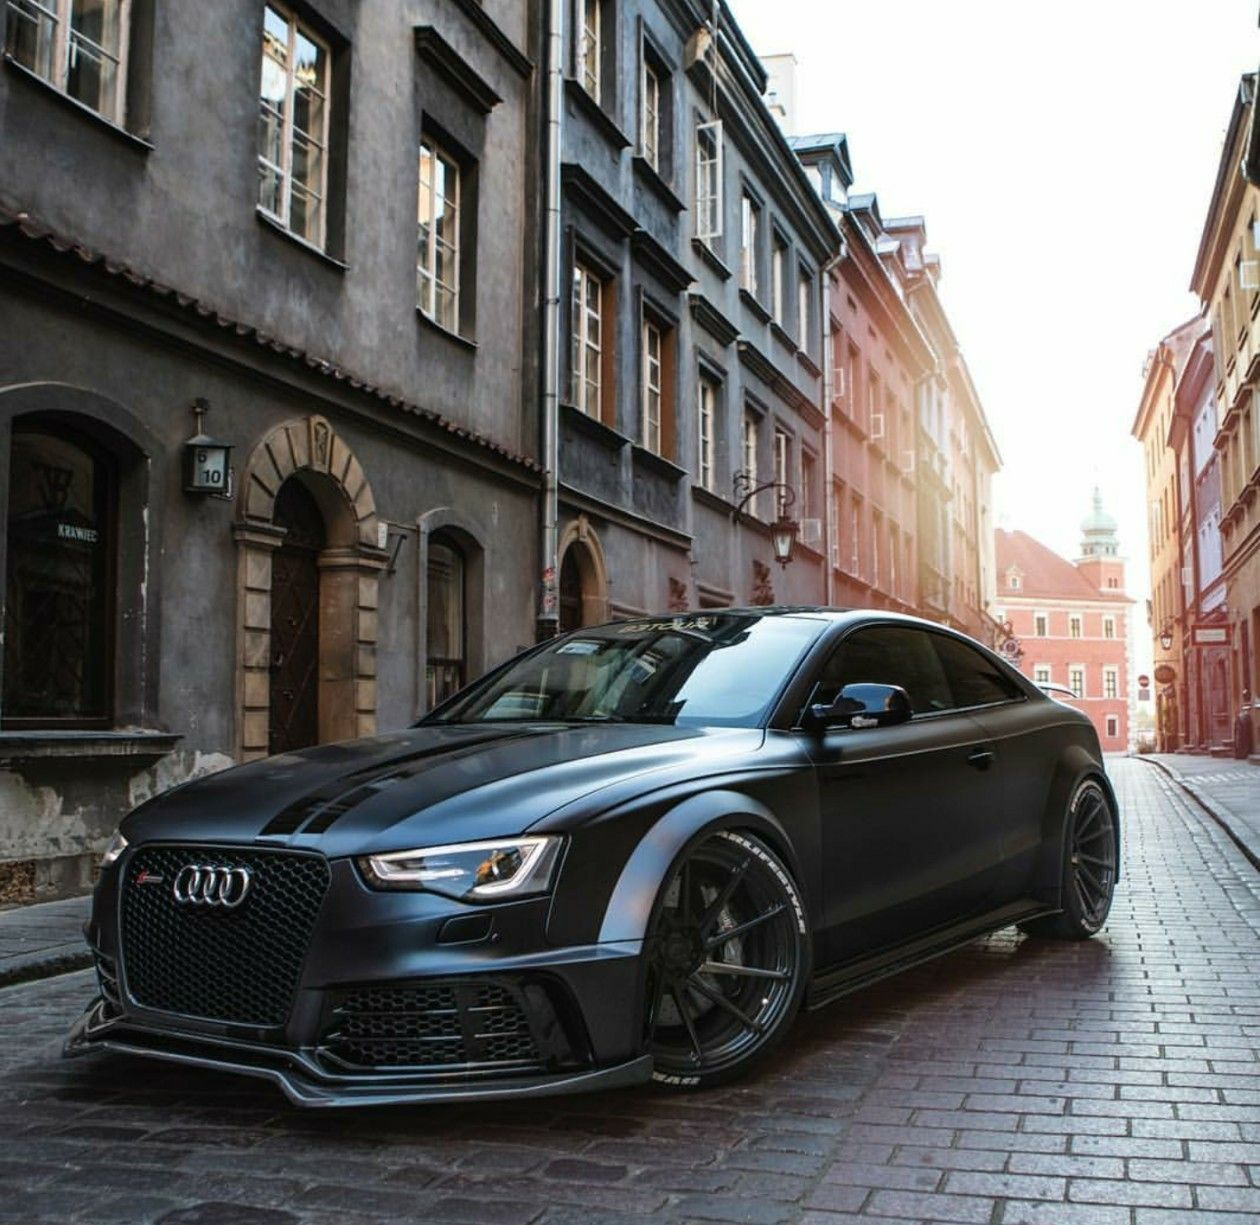 Pin By Gary Willman On Audi Legend Pinterest Cars Dream Rs5 Fuse Box Visit